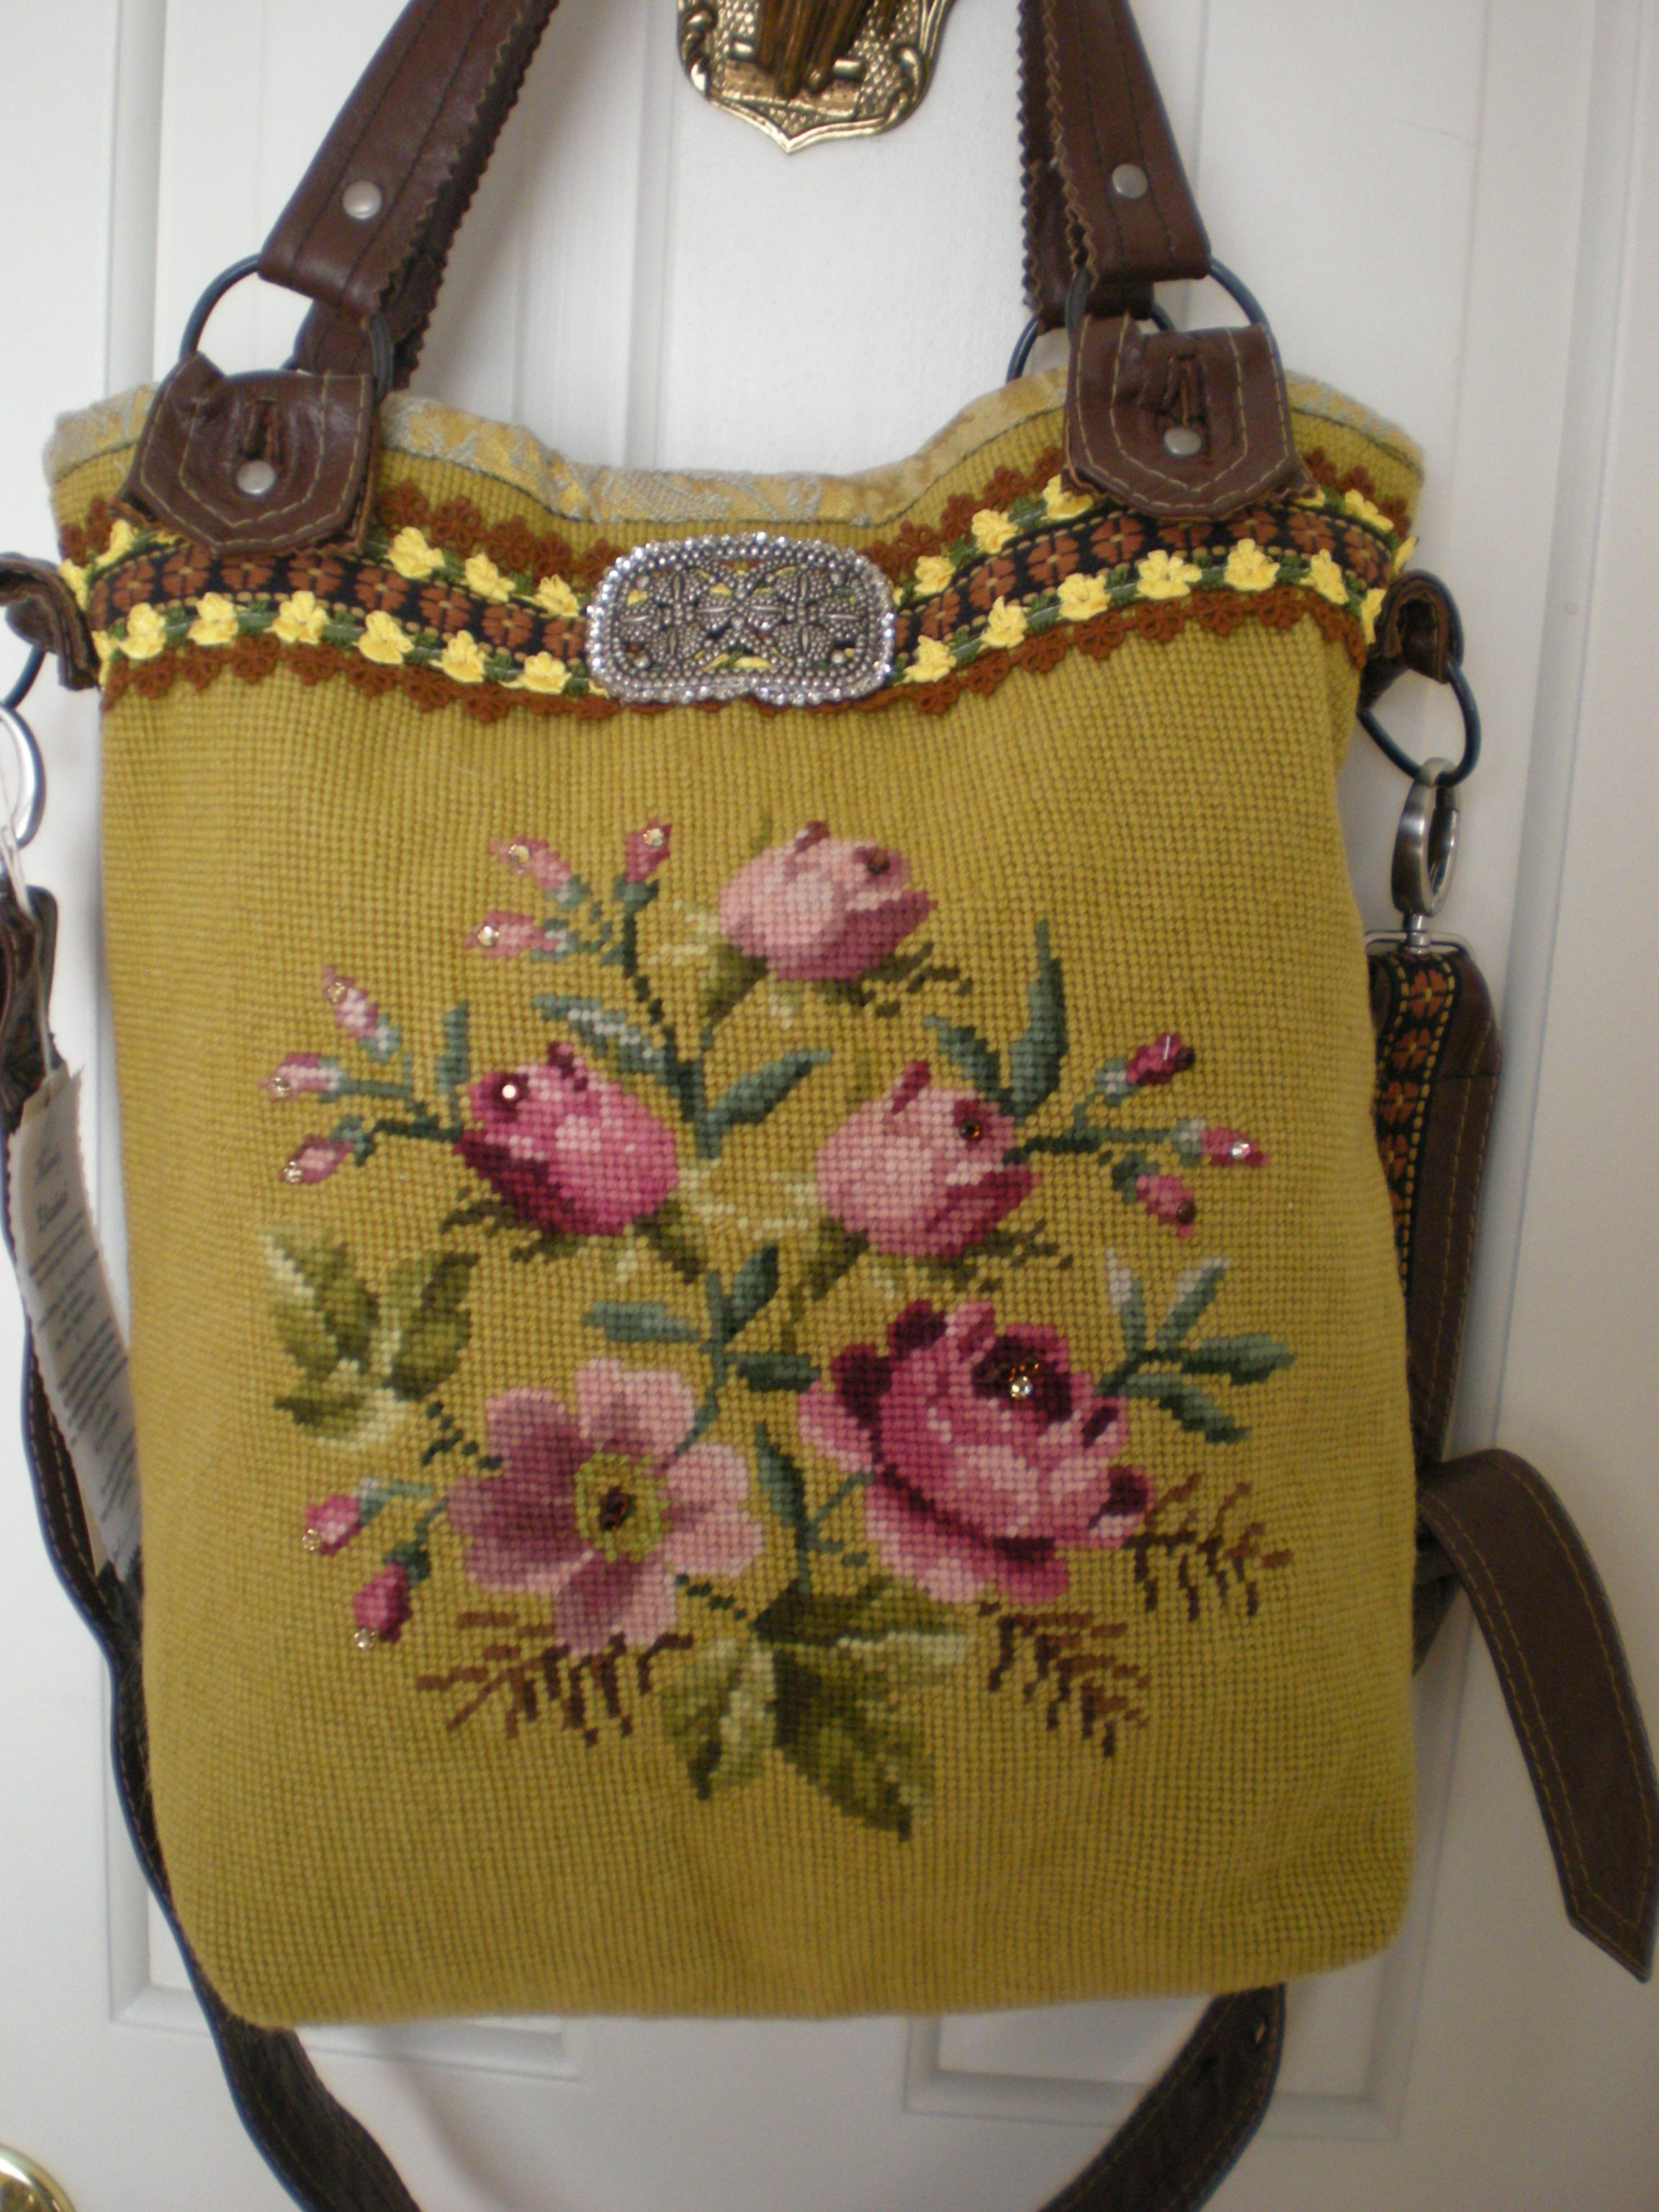 23c27a7a7 ♥needlepoint bag- like the leather finishing, uses a piece of vintage  needlepoint